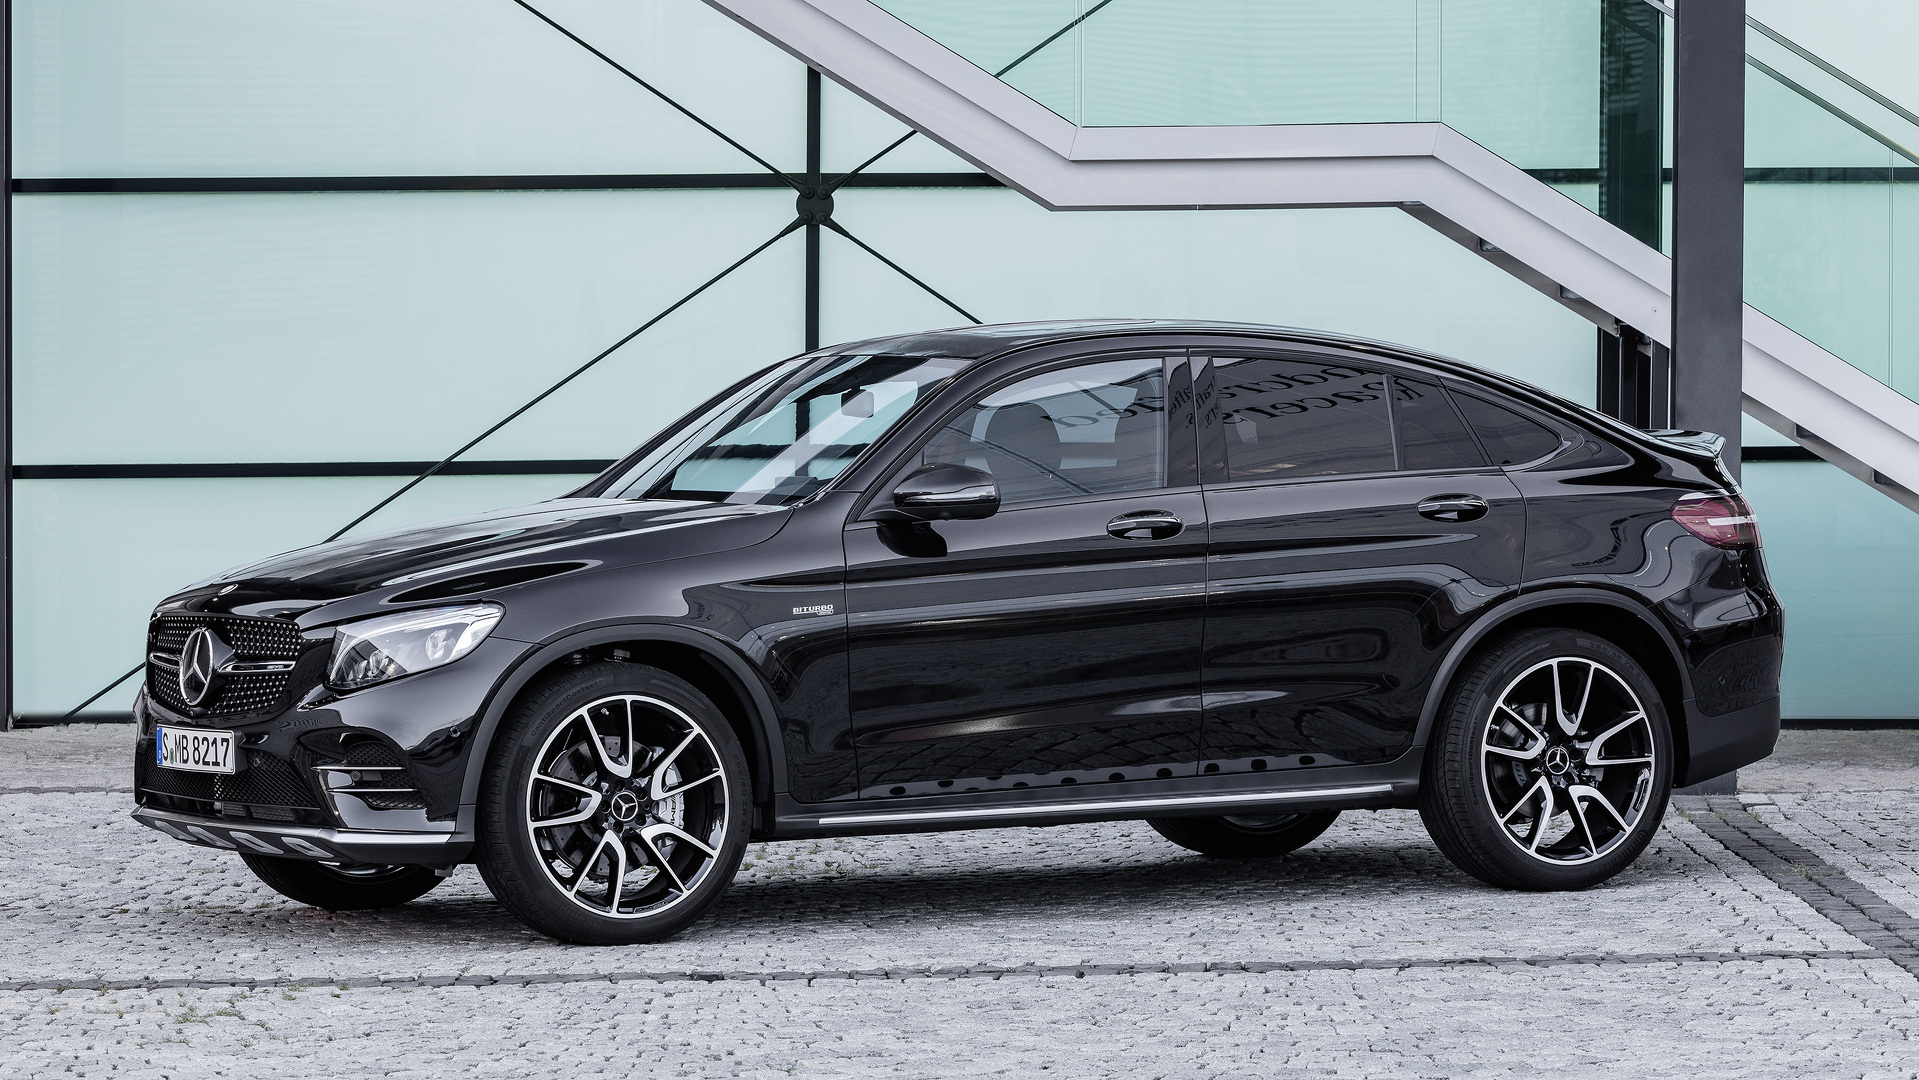 2017 mercedes amg glc43 coupe revealed with 362 hp biturbo v6 for 2017 amg glc 43 coupe mercedes benz